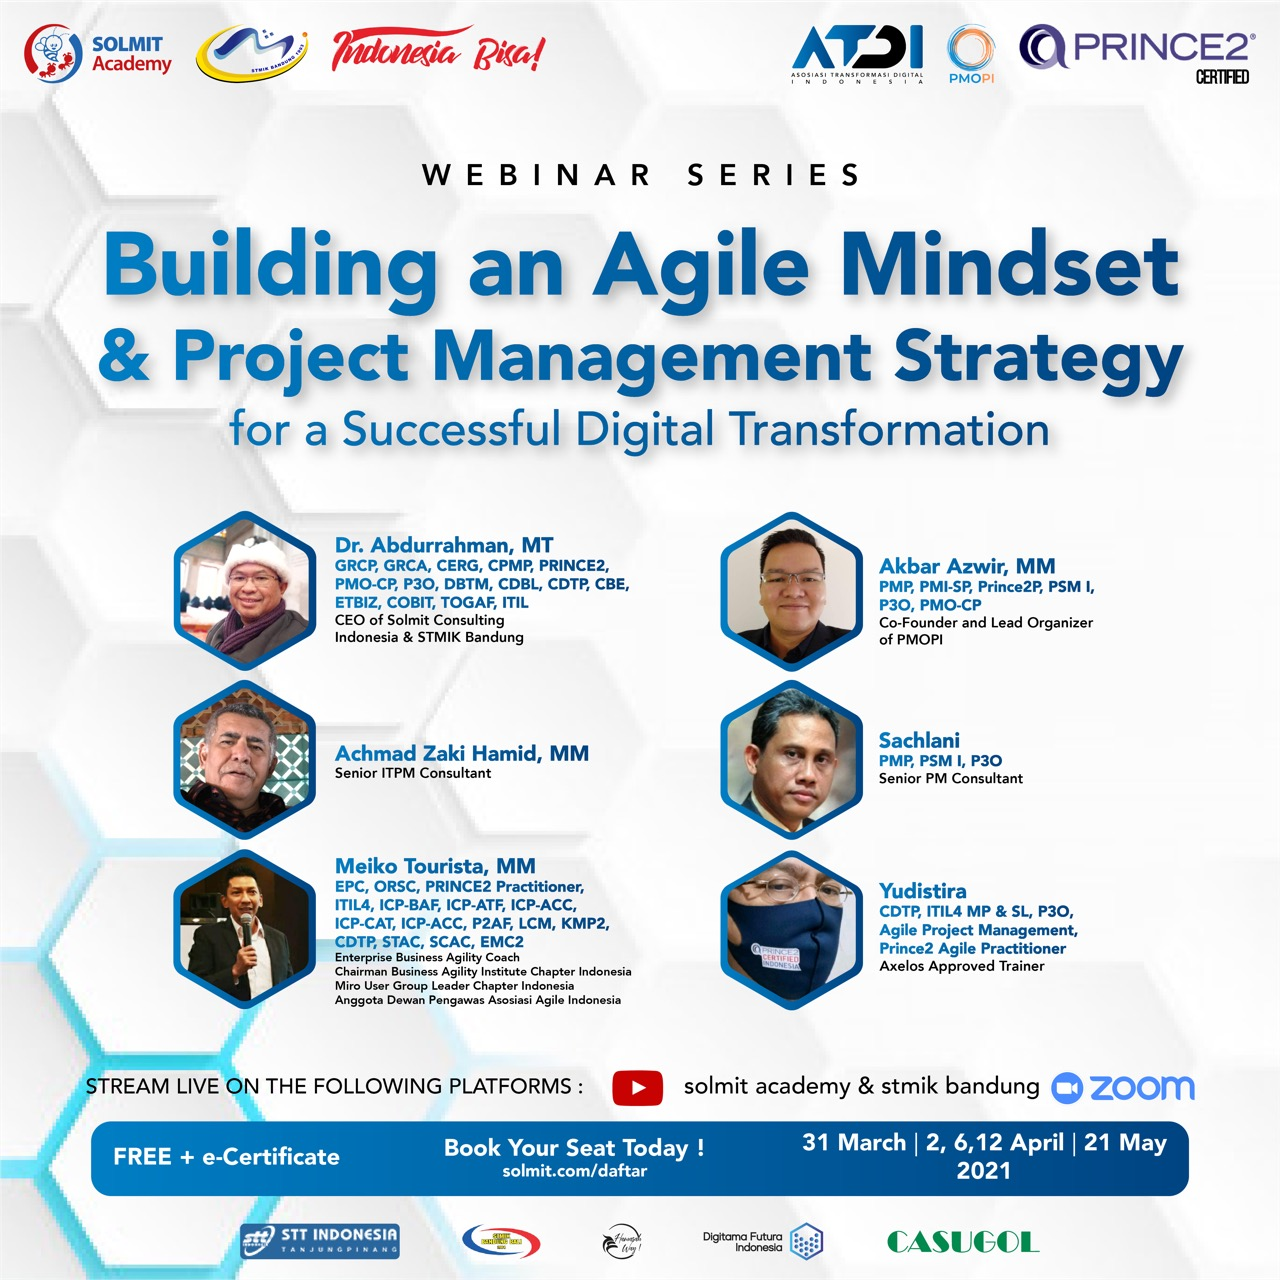 New FREE Webminar Series - Building an Agile Mindset & Project  Management Strategy